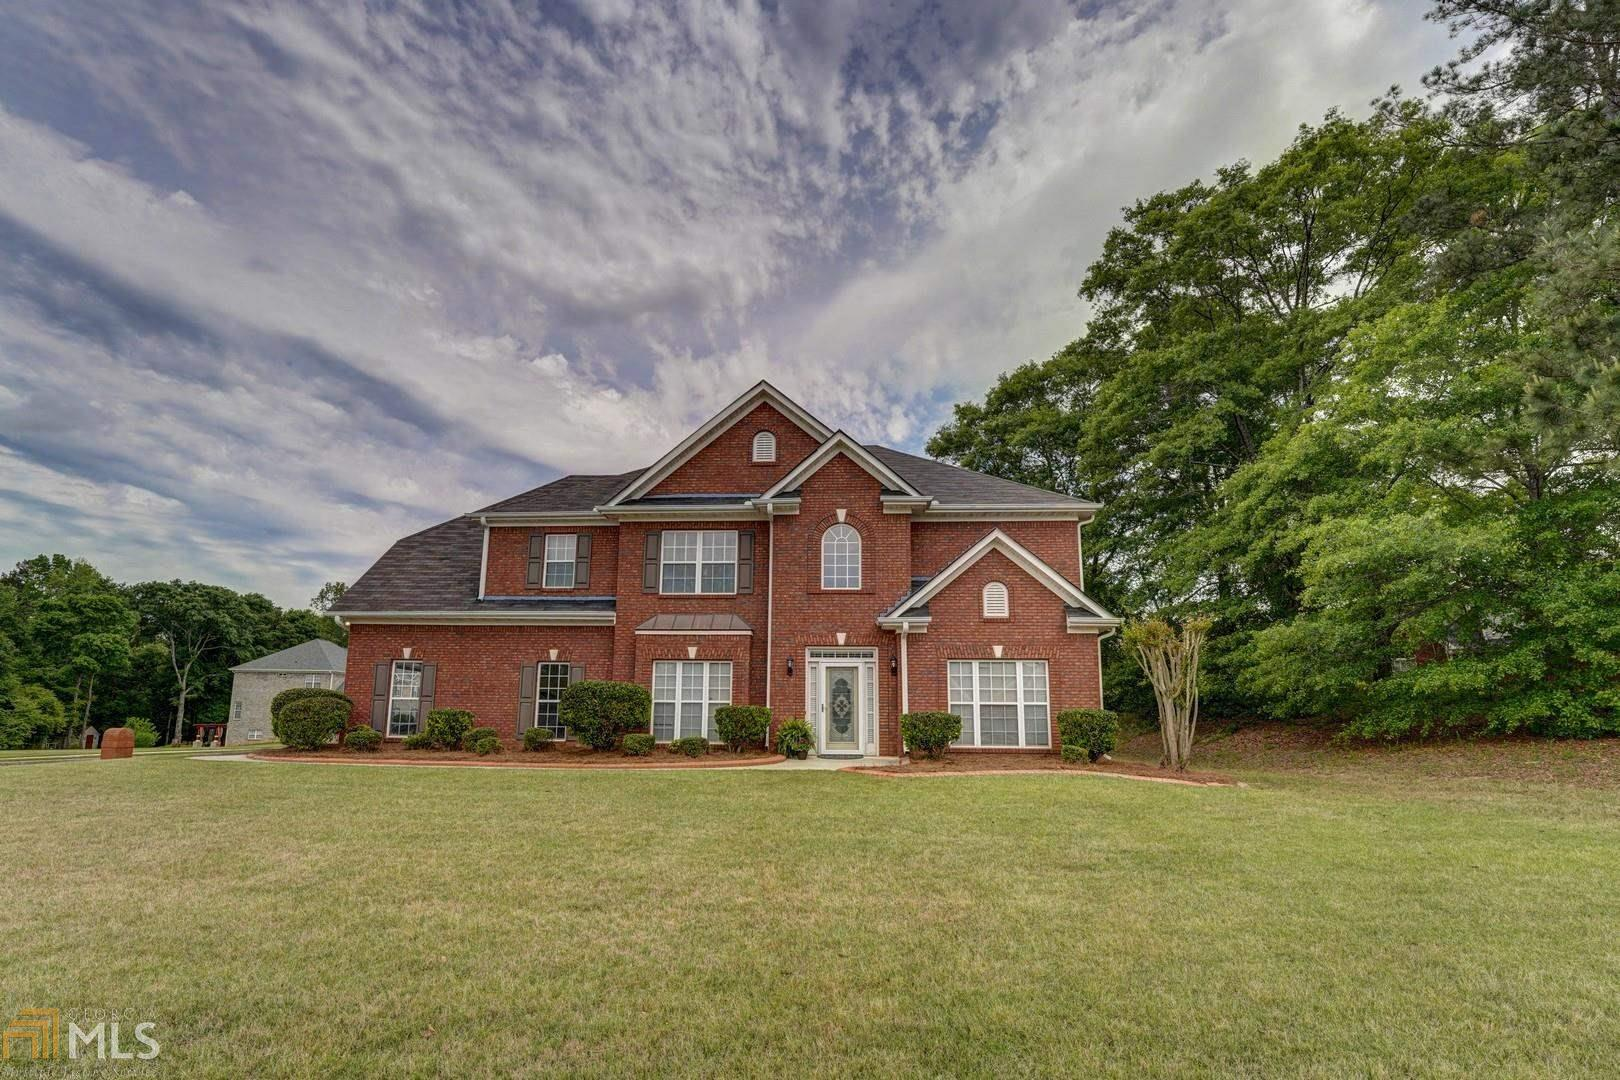 Image for property 1401 Hadlow Ct 39, Conyers, GA 30094